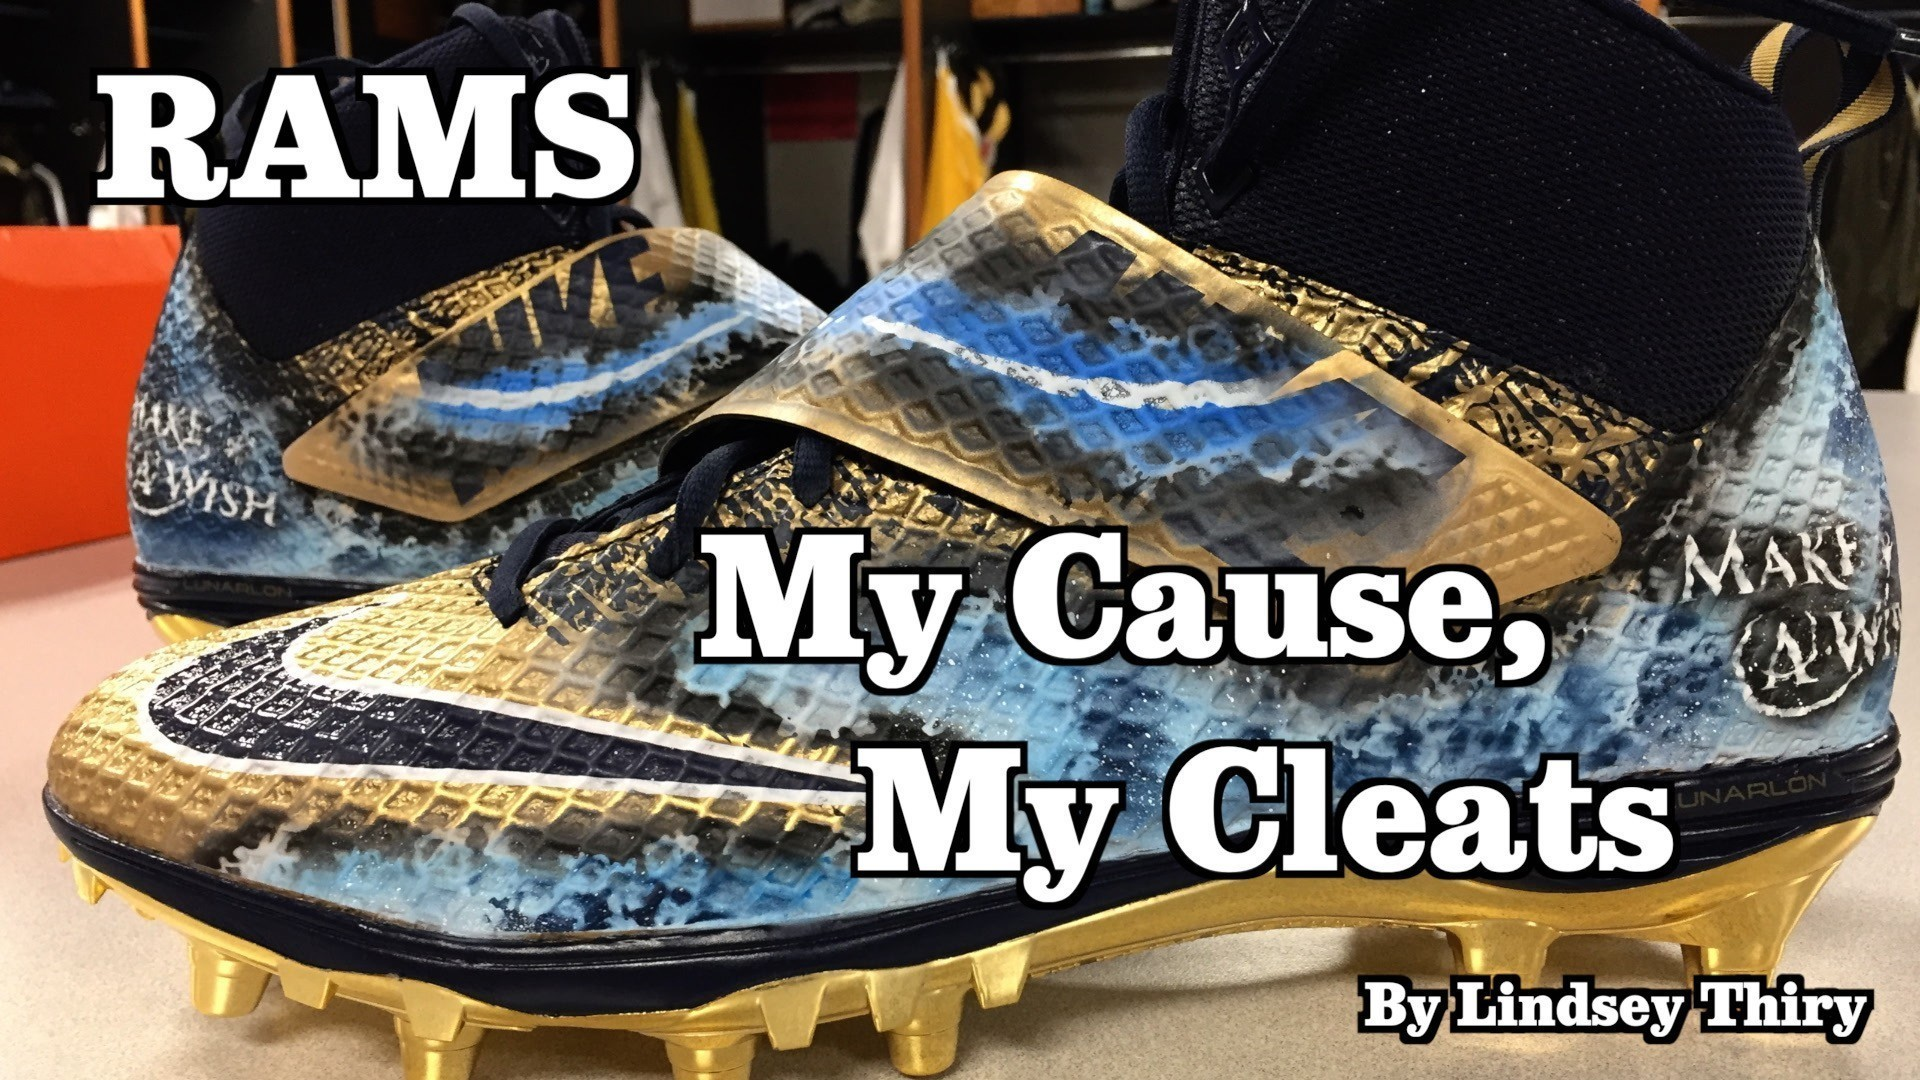 Rams players will wear custom cleats for NFL's 'My Cause, My Cleats' campaign